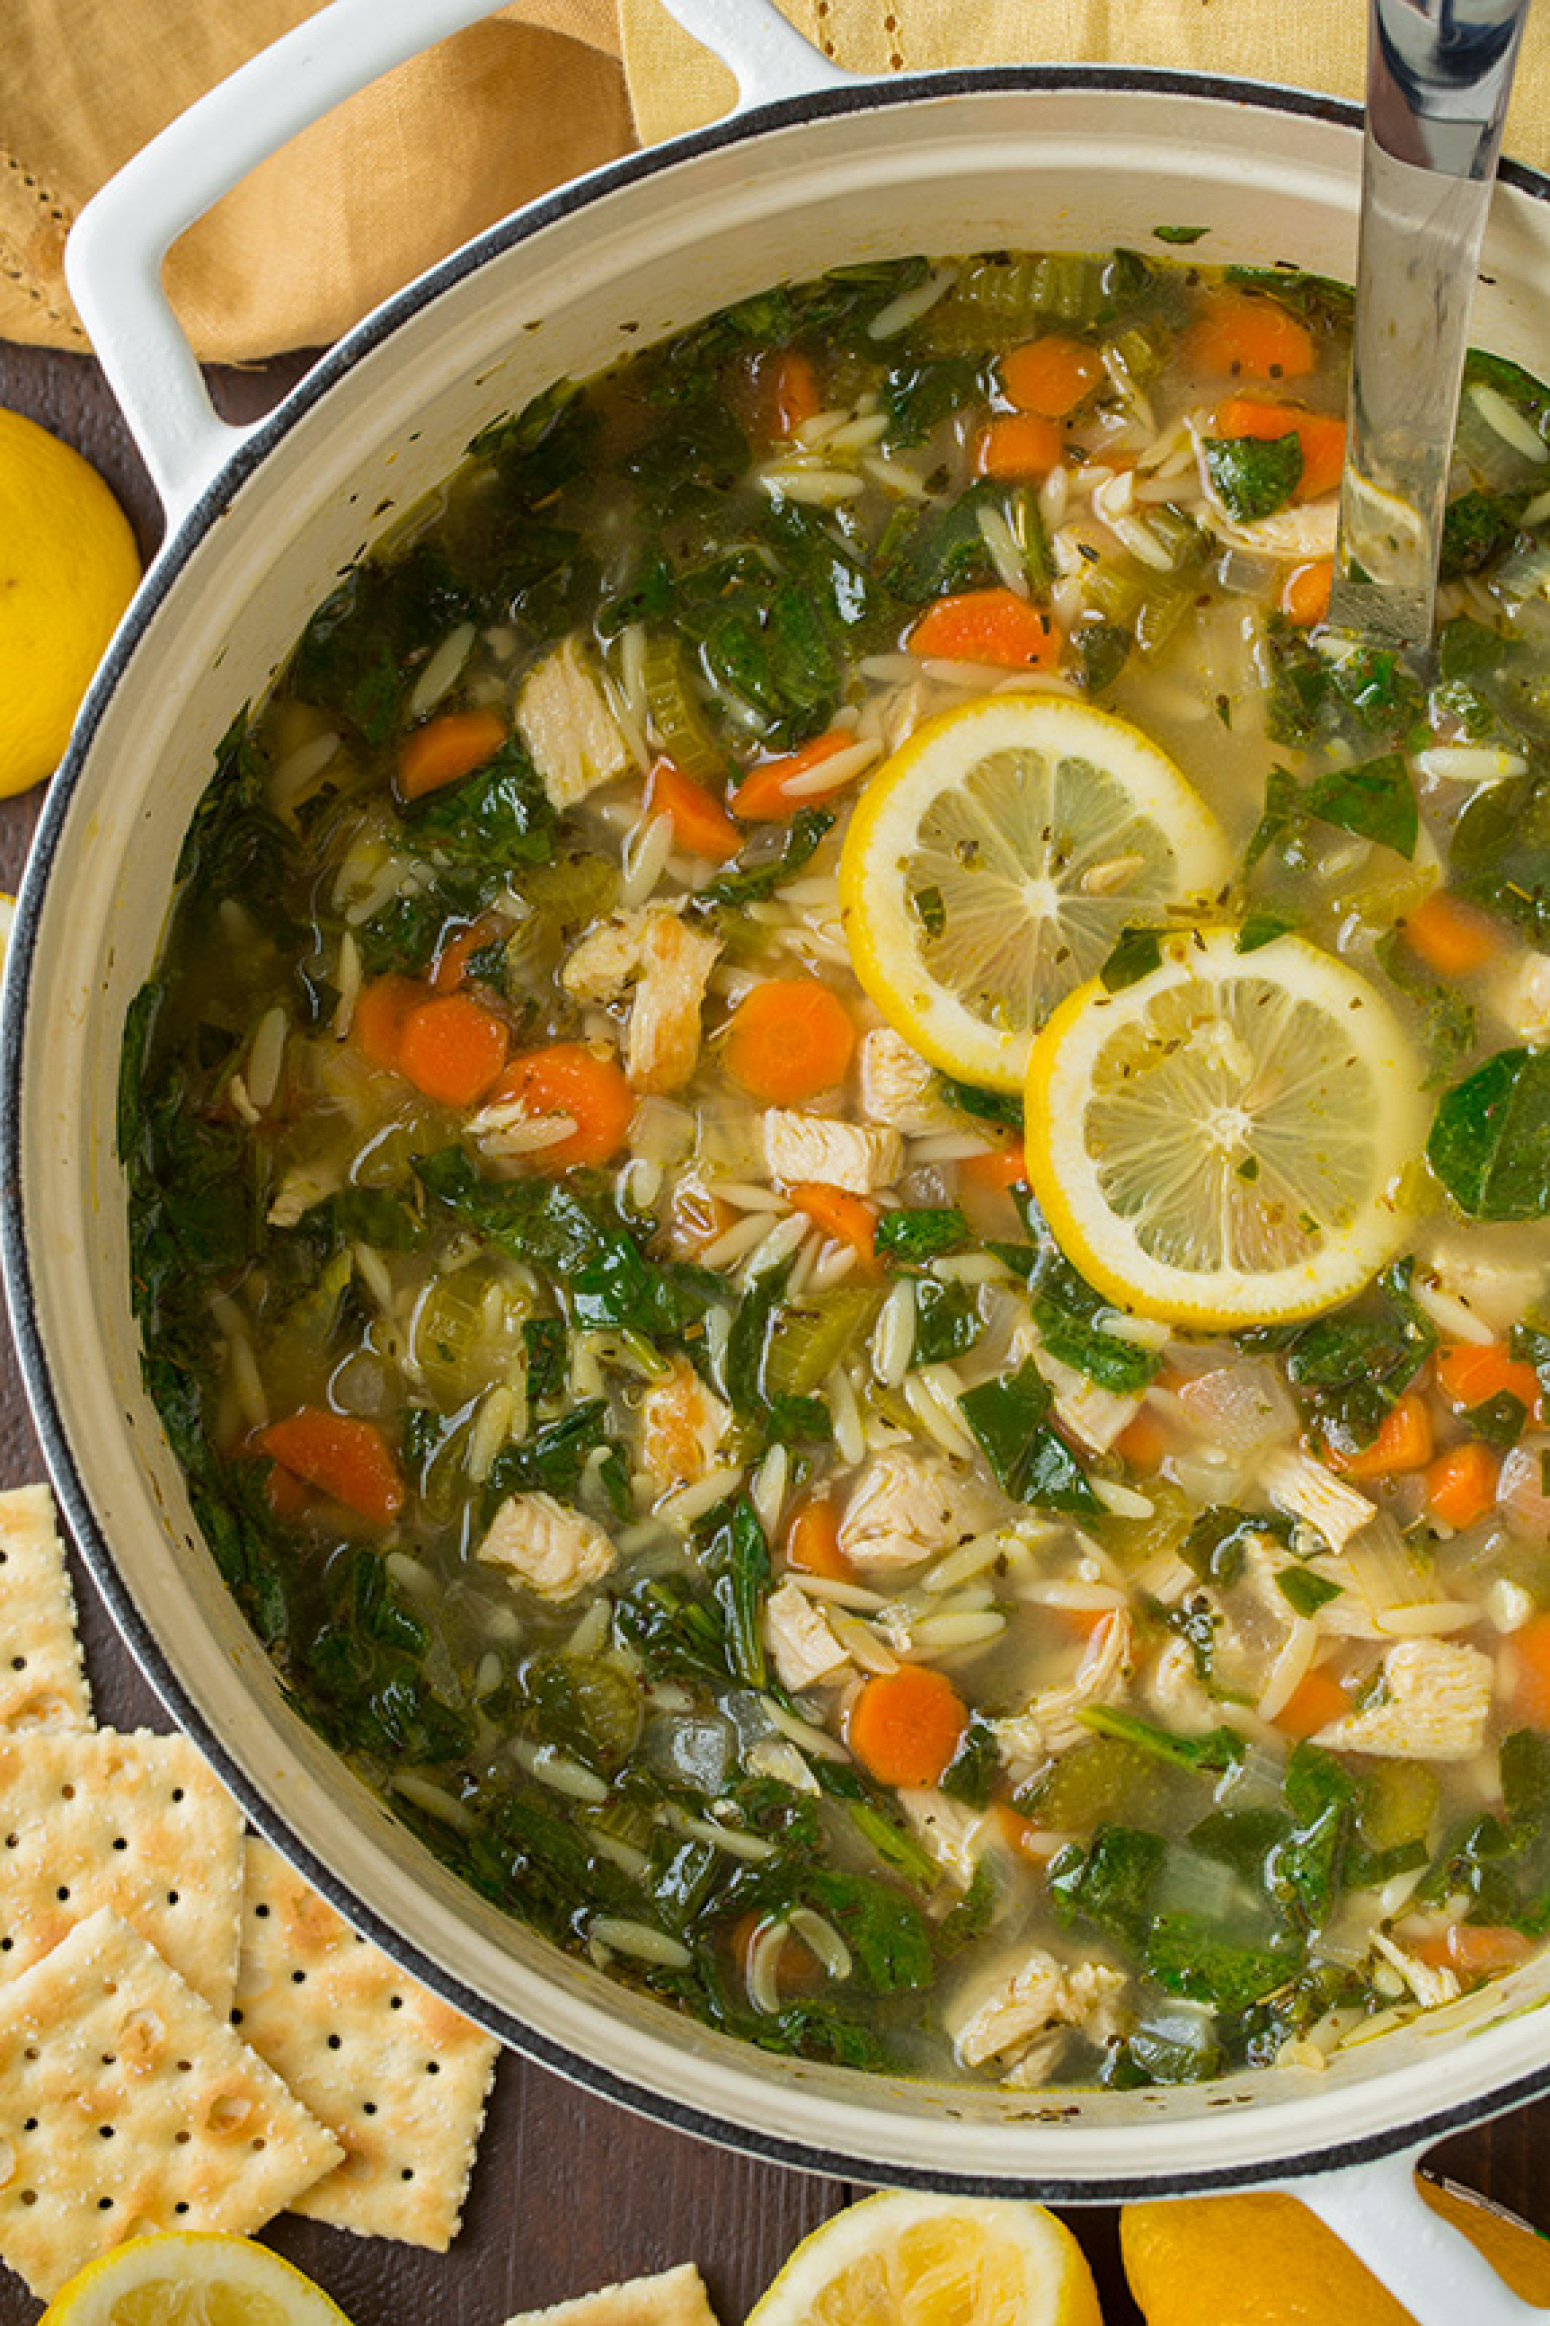 Lemon Chicken and Spinach Orzo Soup Recipe | Just A Pinch Recipes